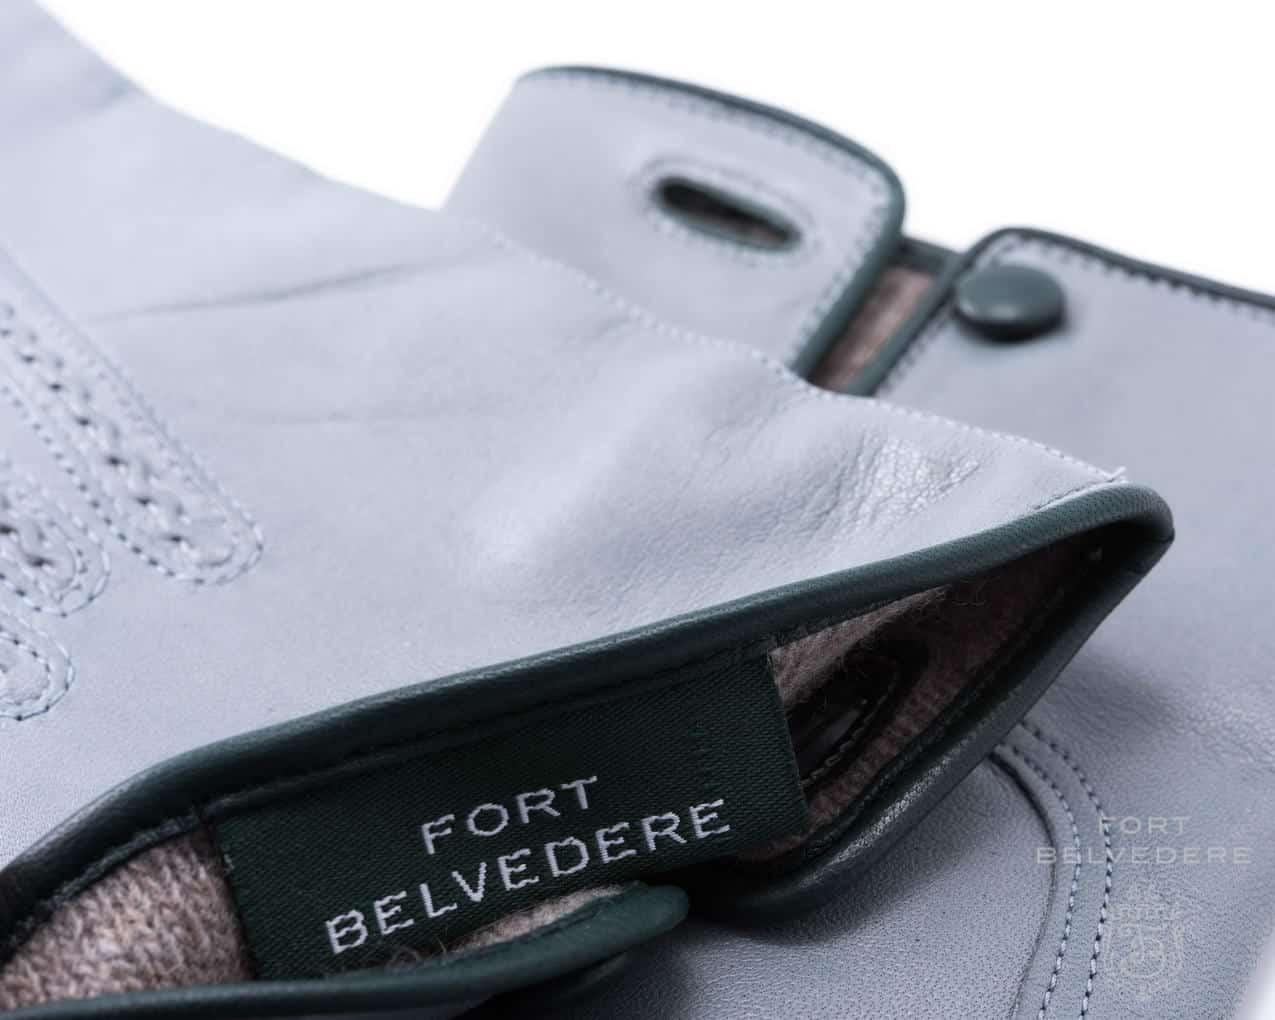 Leather work gloves with wool lining - Light Grey Men S Gloves With Cashmere Lining Fort Belvedere